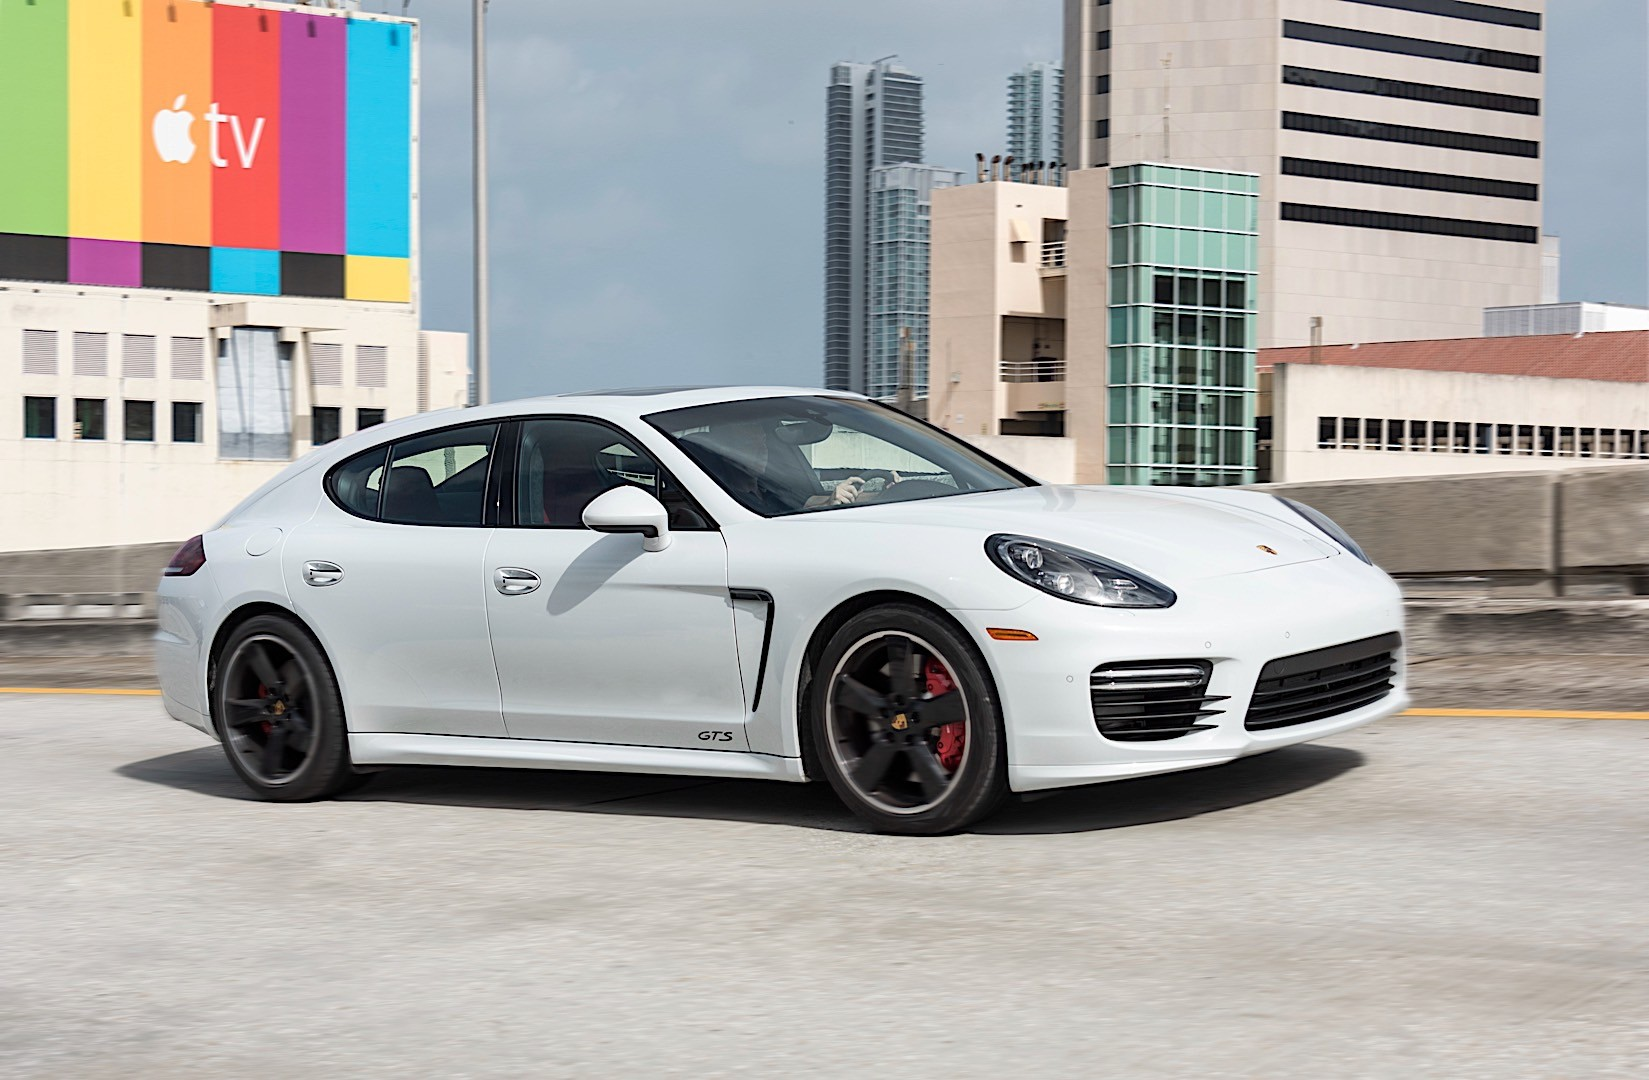 porsche panamera gts 970 specs 2013 2014 2015 2016 autoevolution. Black Bedroom Furniture Sets. Home Design Ideas